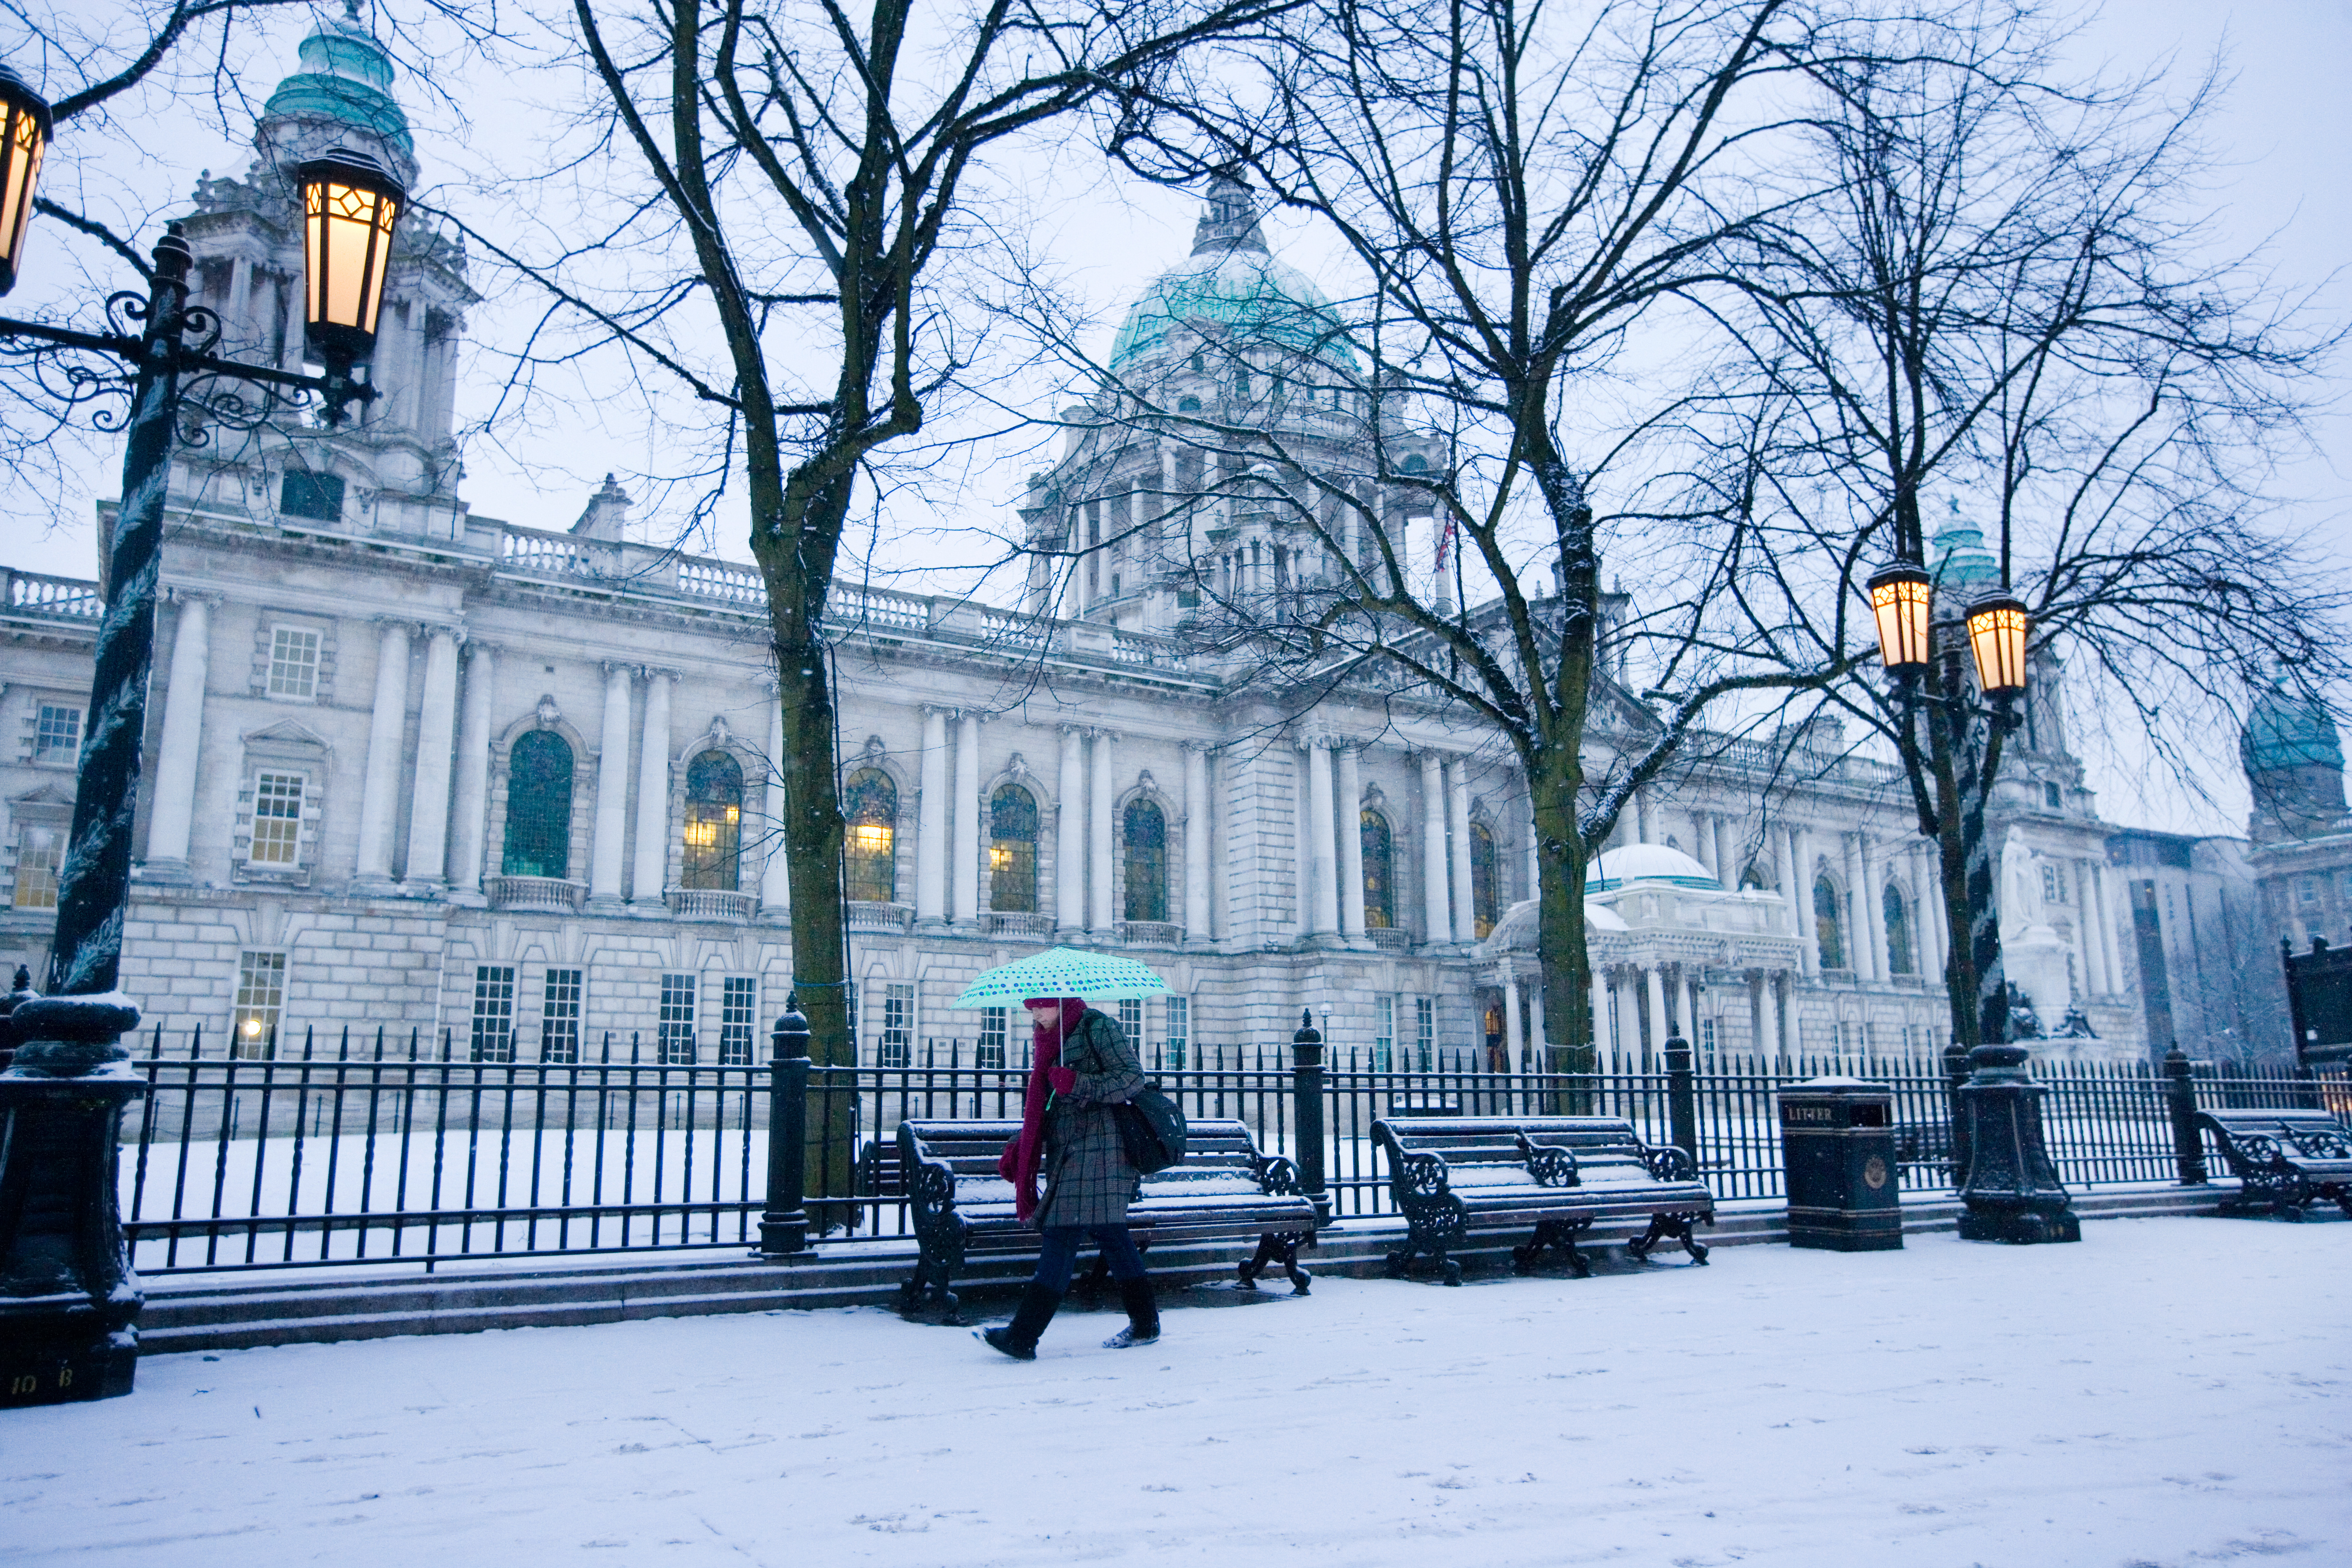 Winter at Belfast City Hall